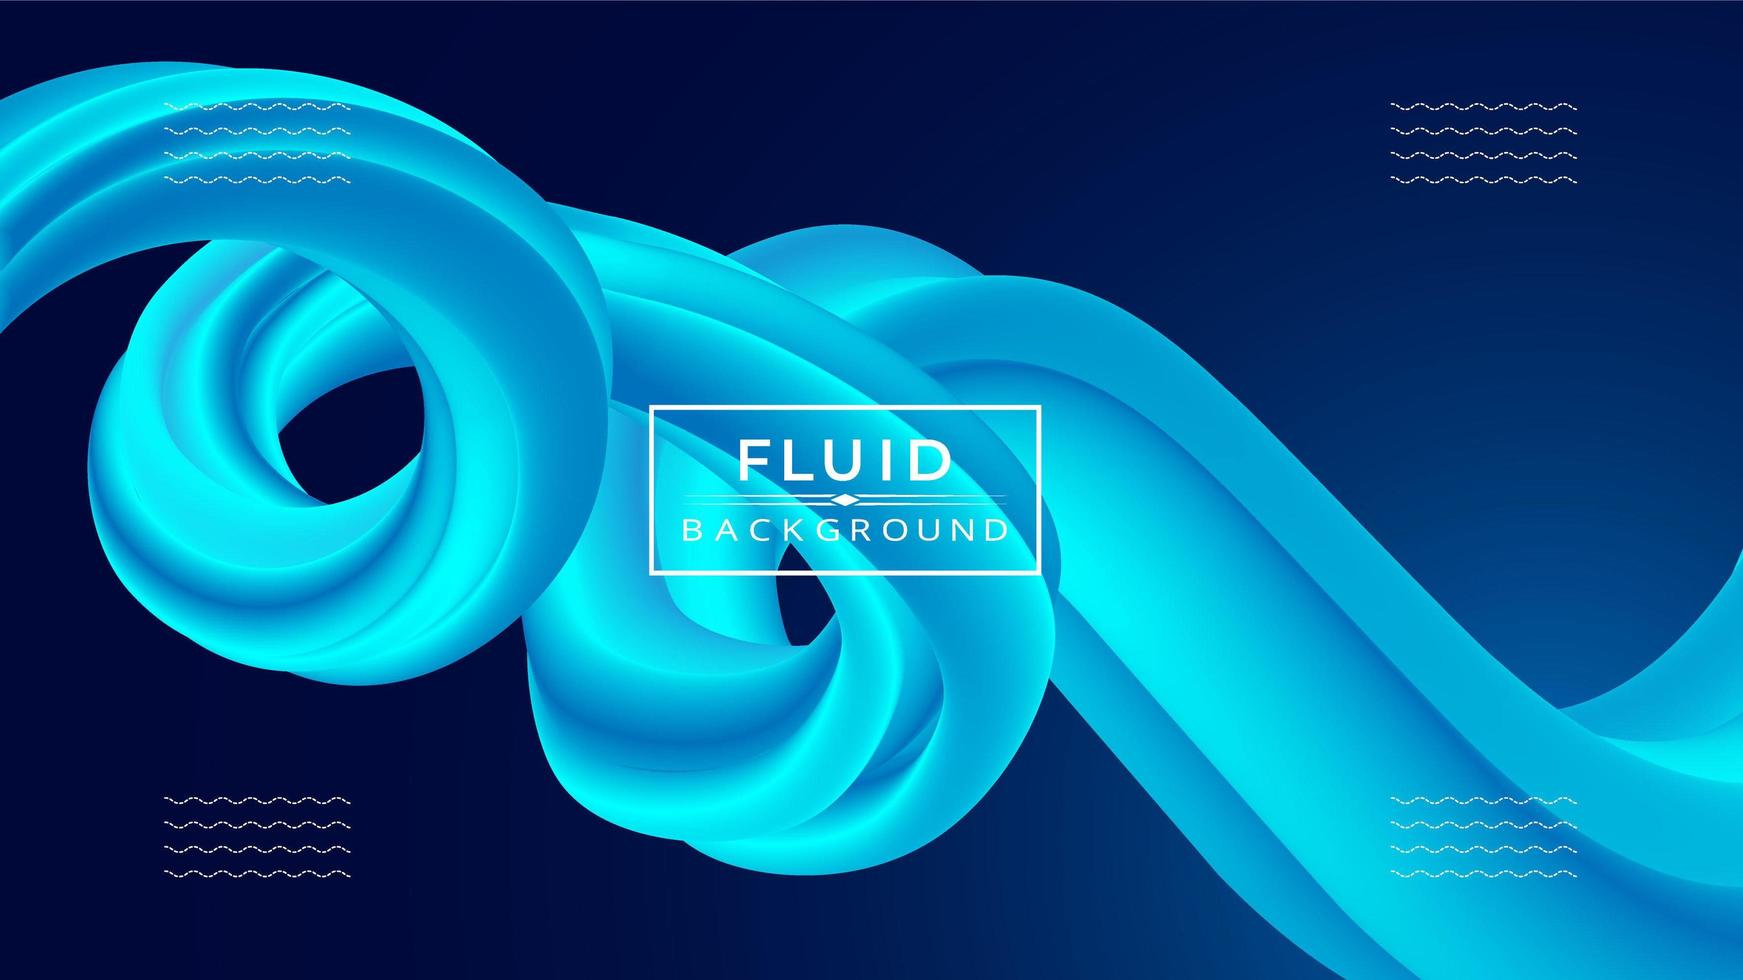 Modern abstract background with 3d fluid shapes vector